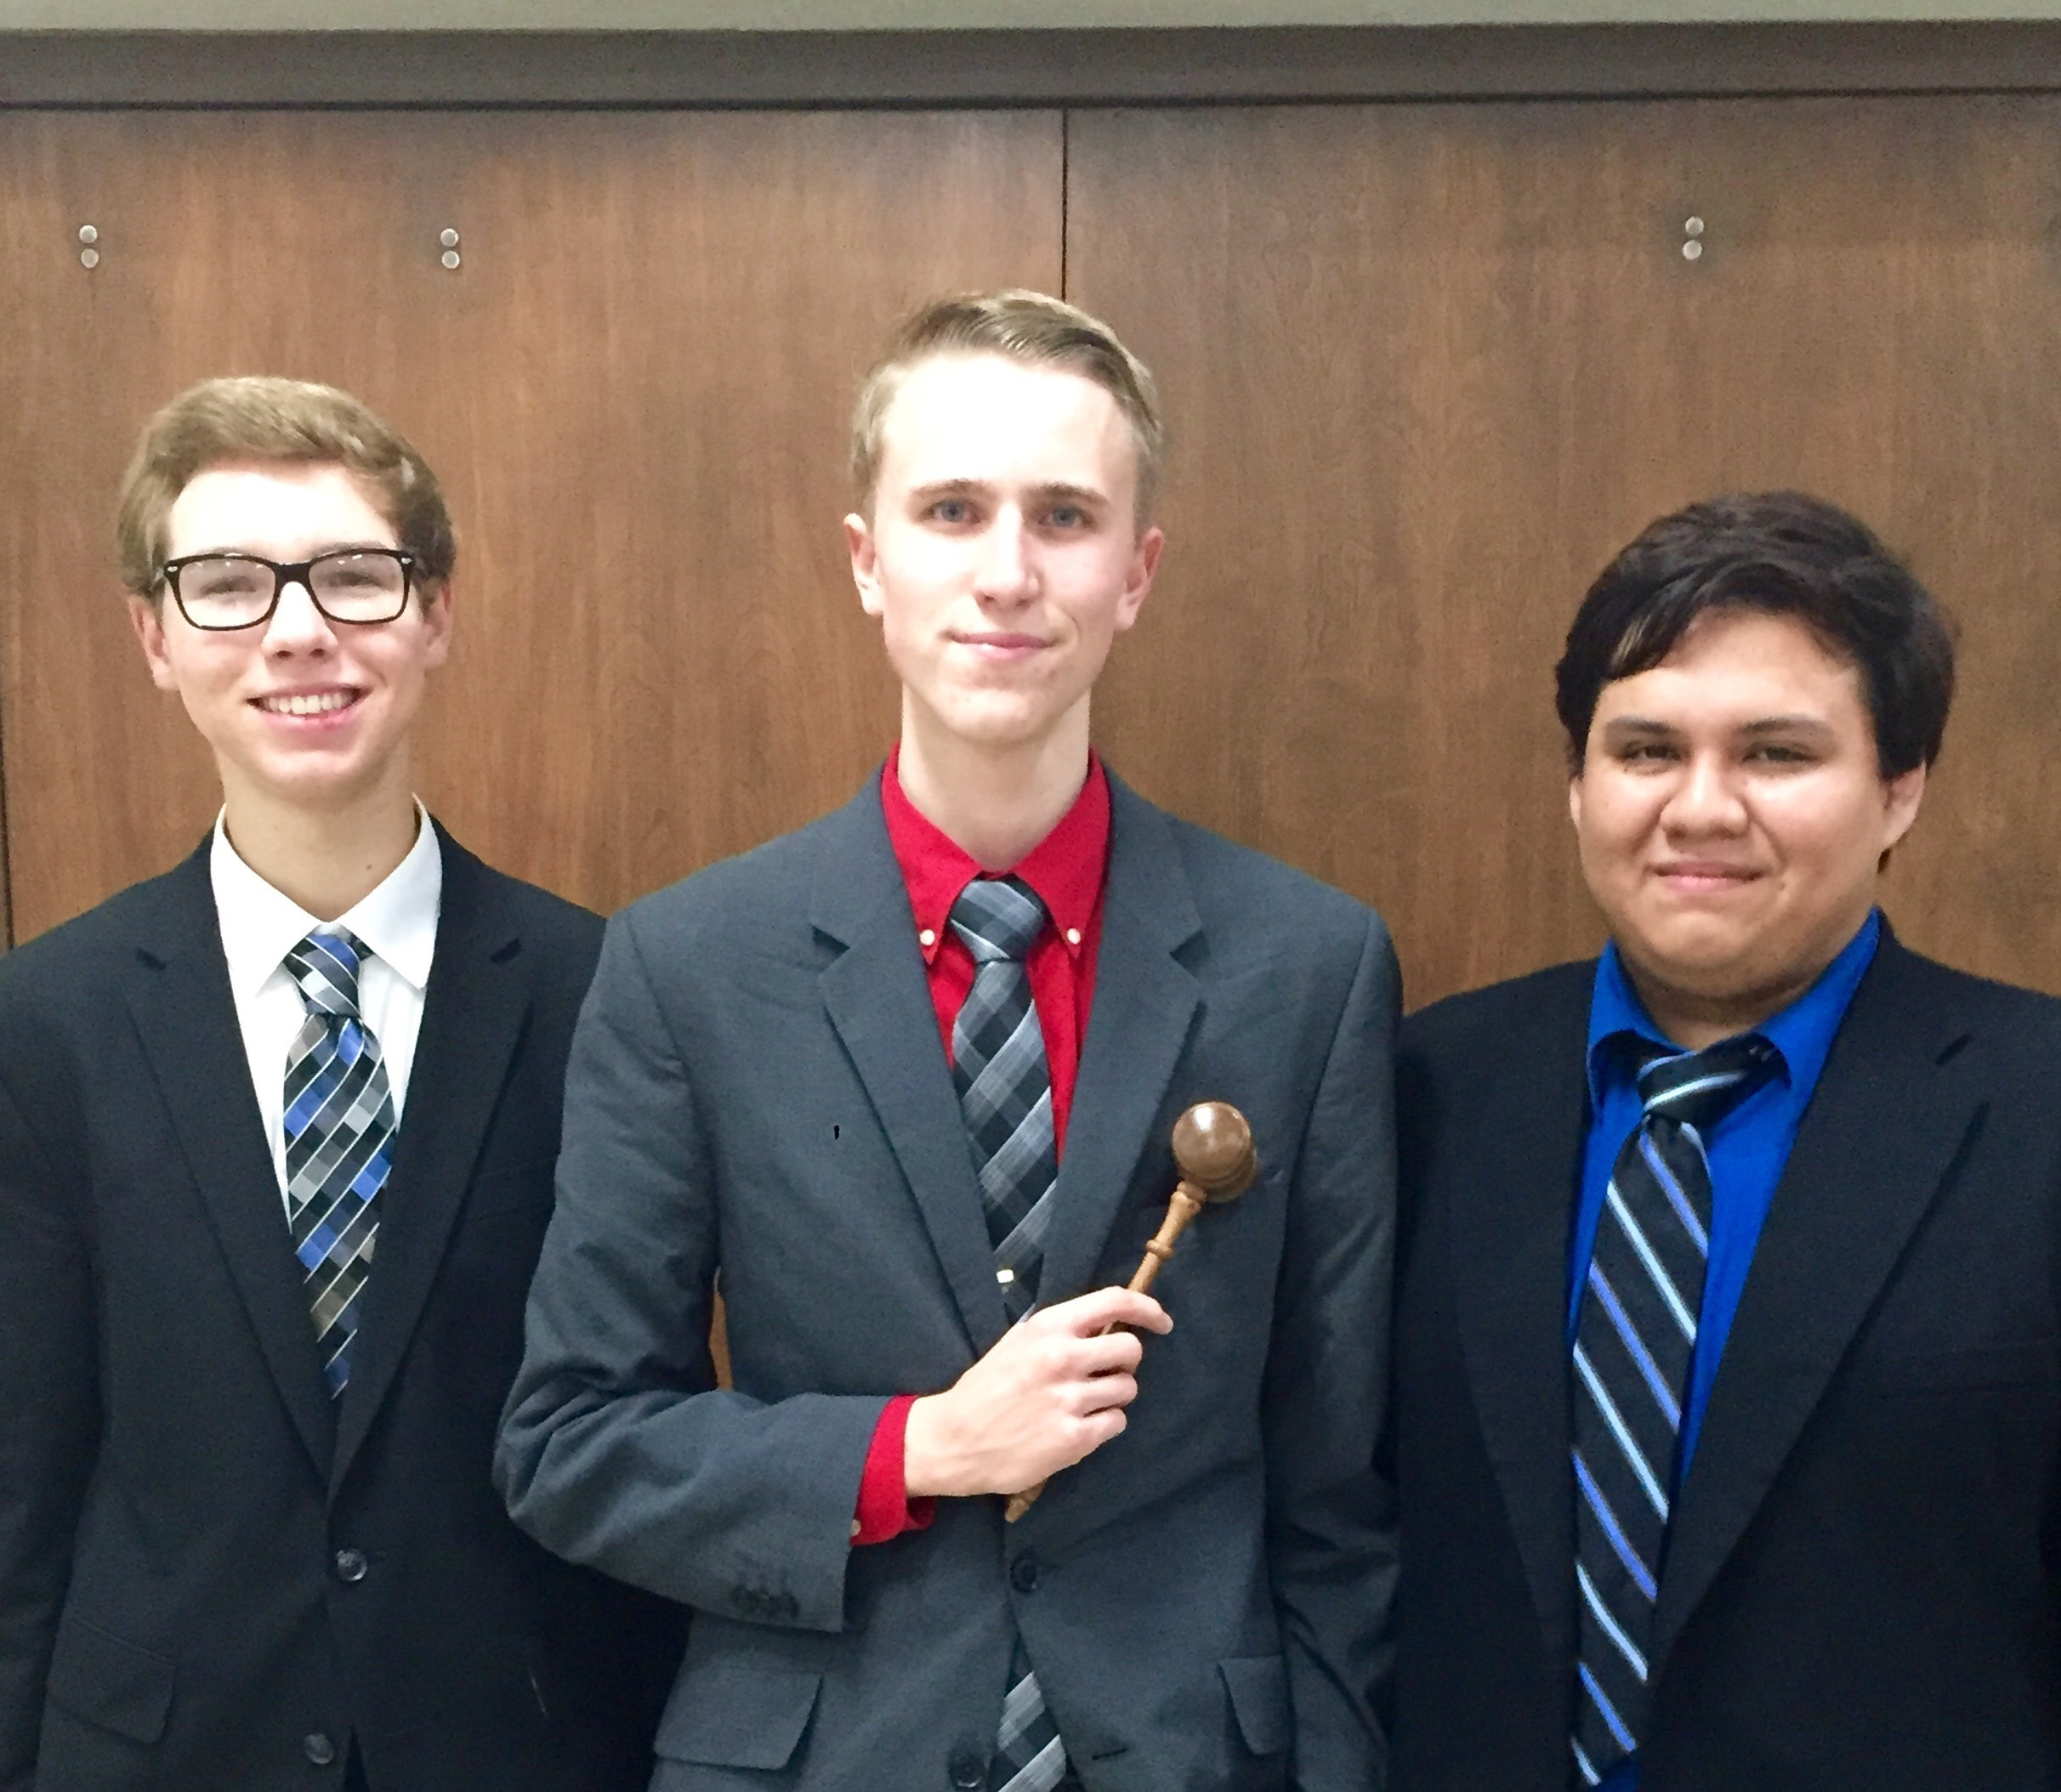 Top Speech, Drama, and Debate competitors advance to State Congress Meet